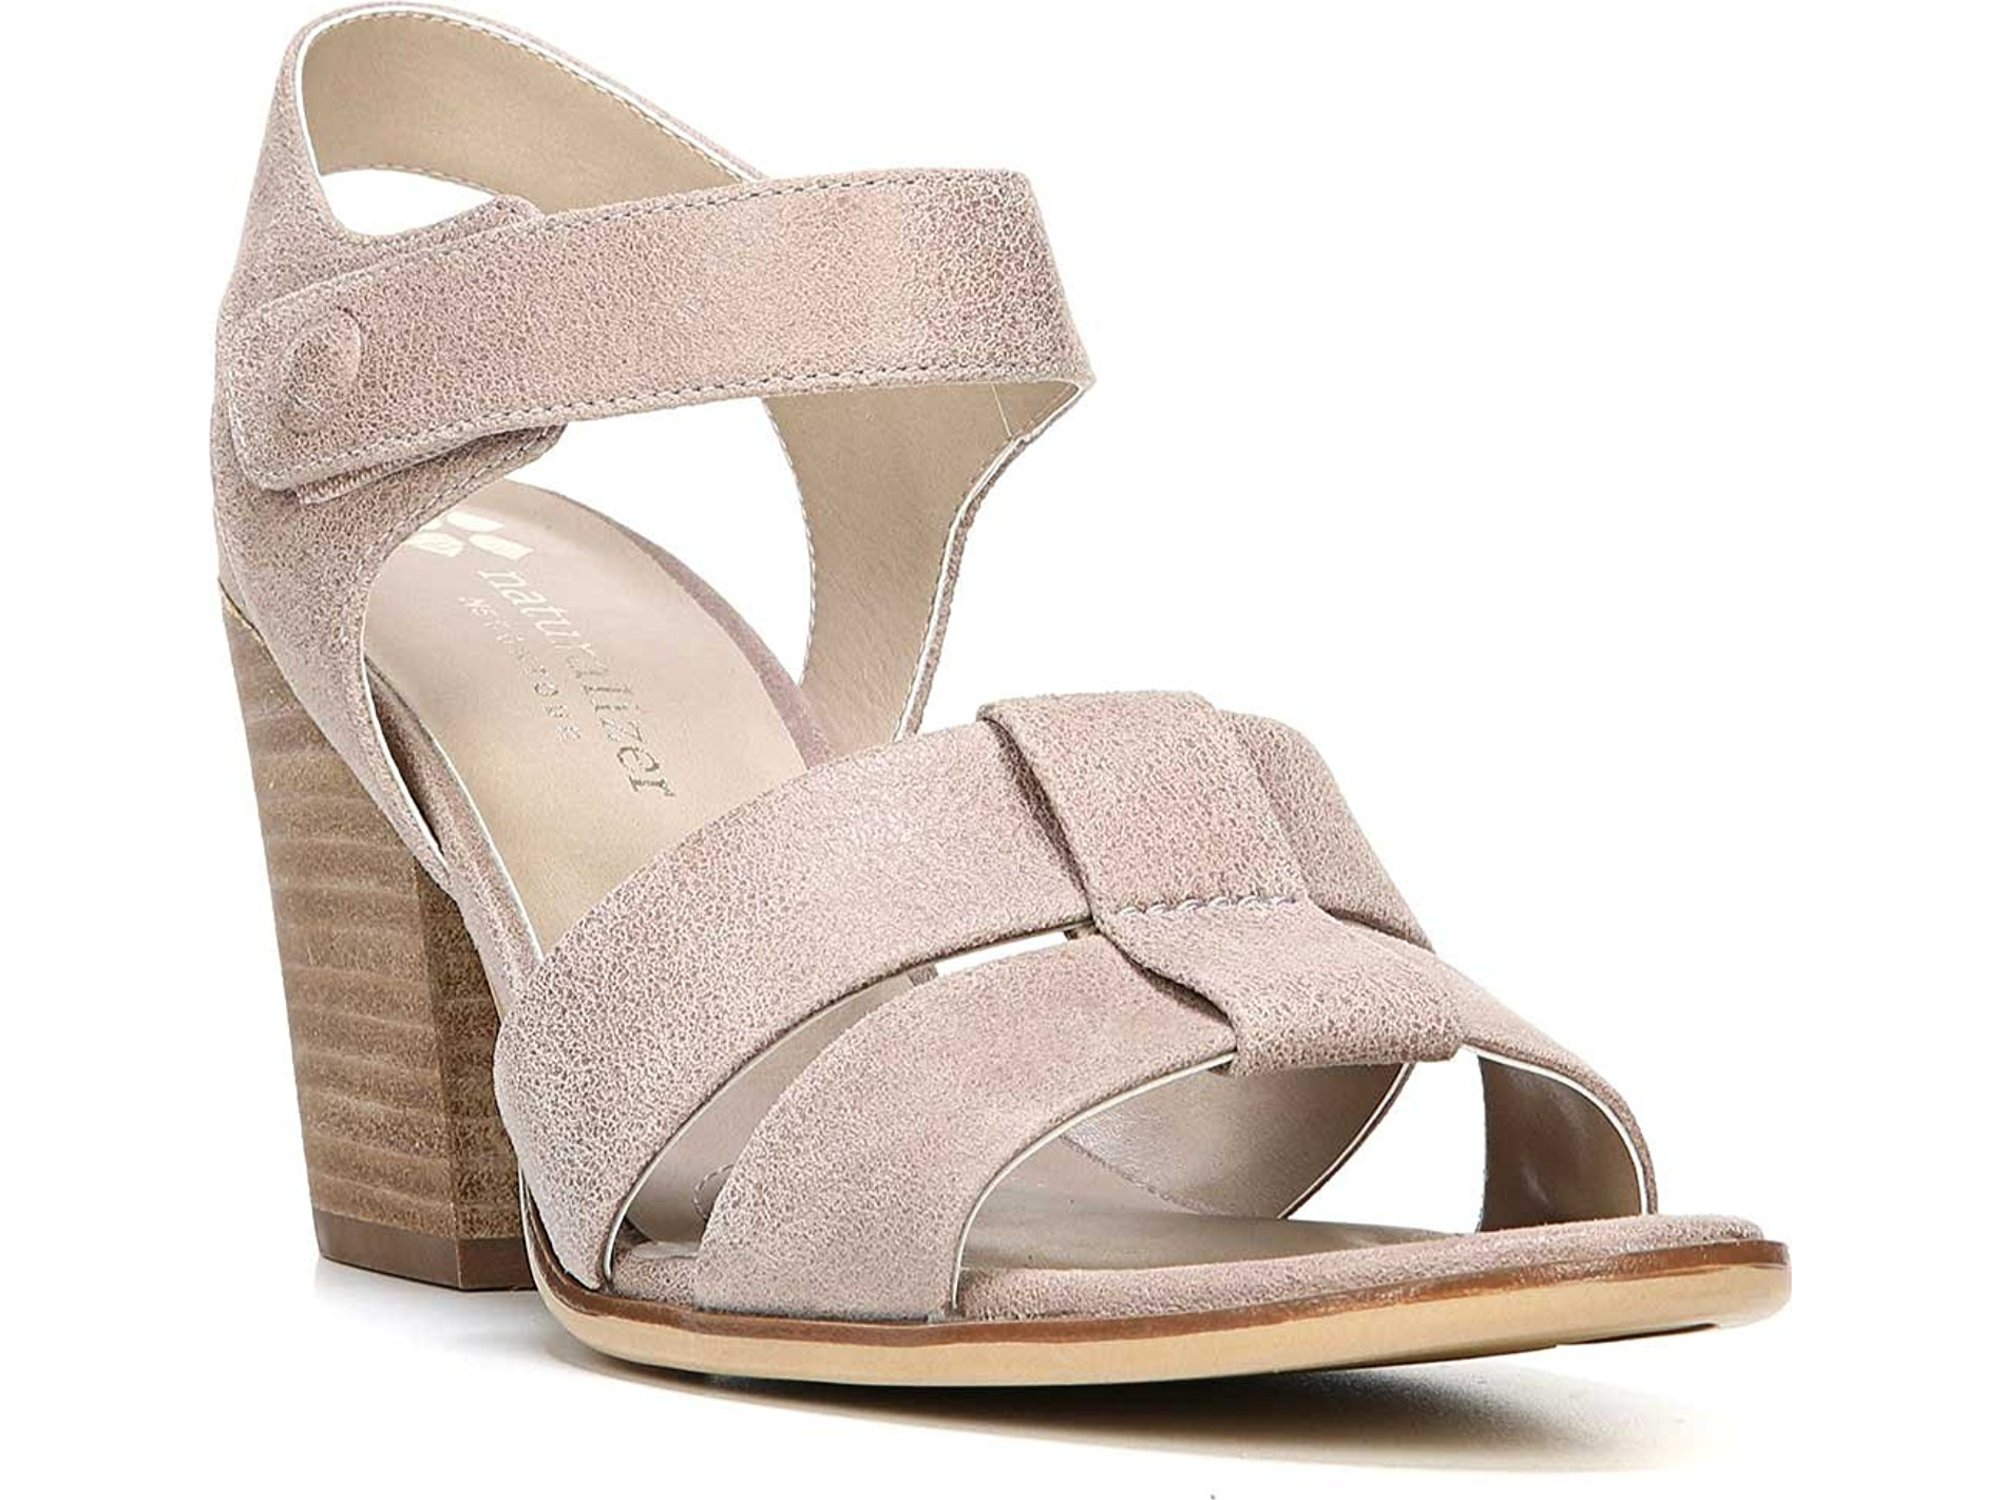 3a5562149238 Naturalizer - Naturalizer Womens Yolanda Leather Open Toe Casual Ankle  Strap Sandals - Walmart.com